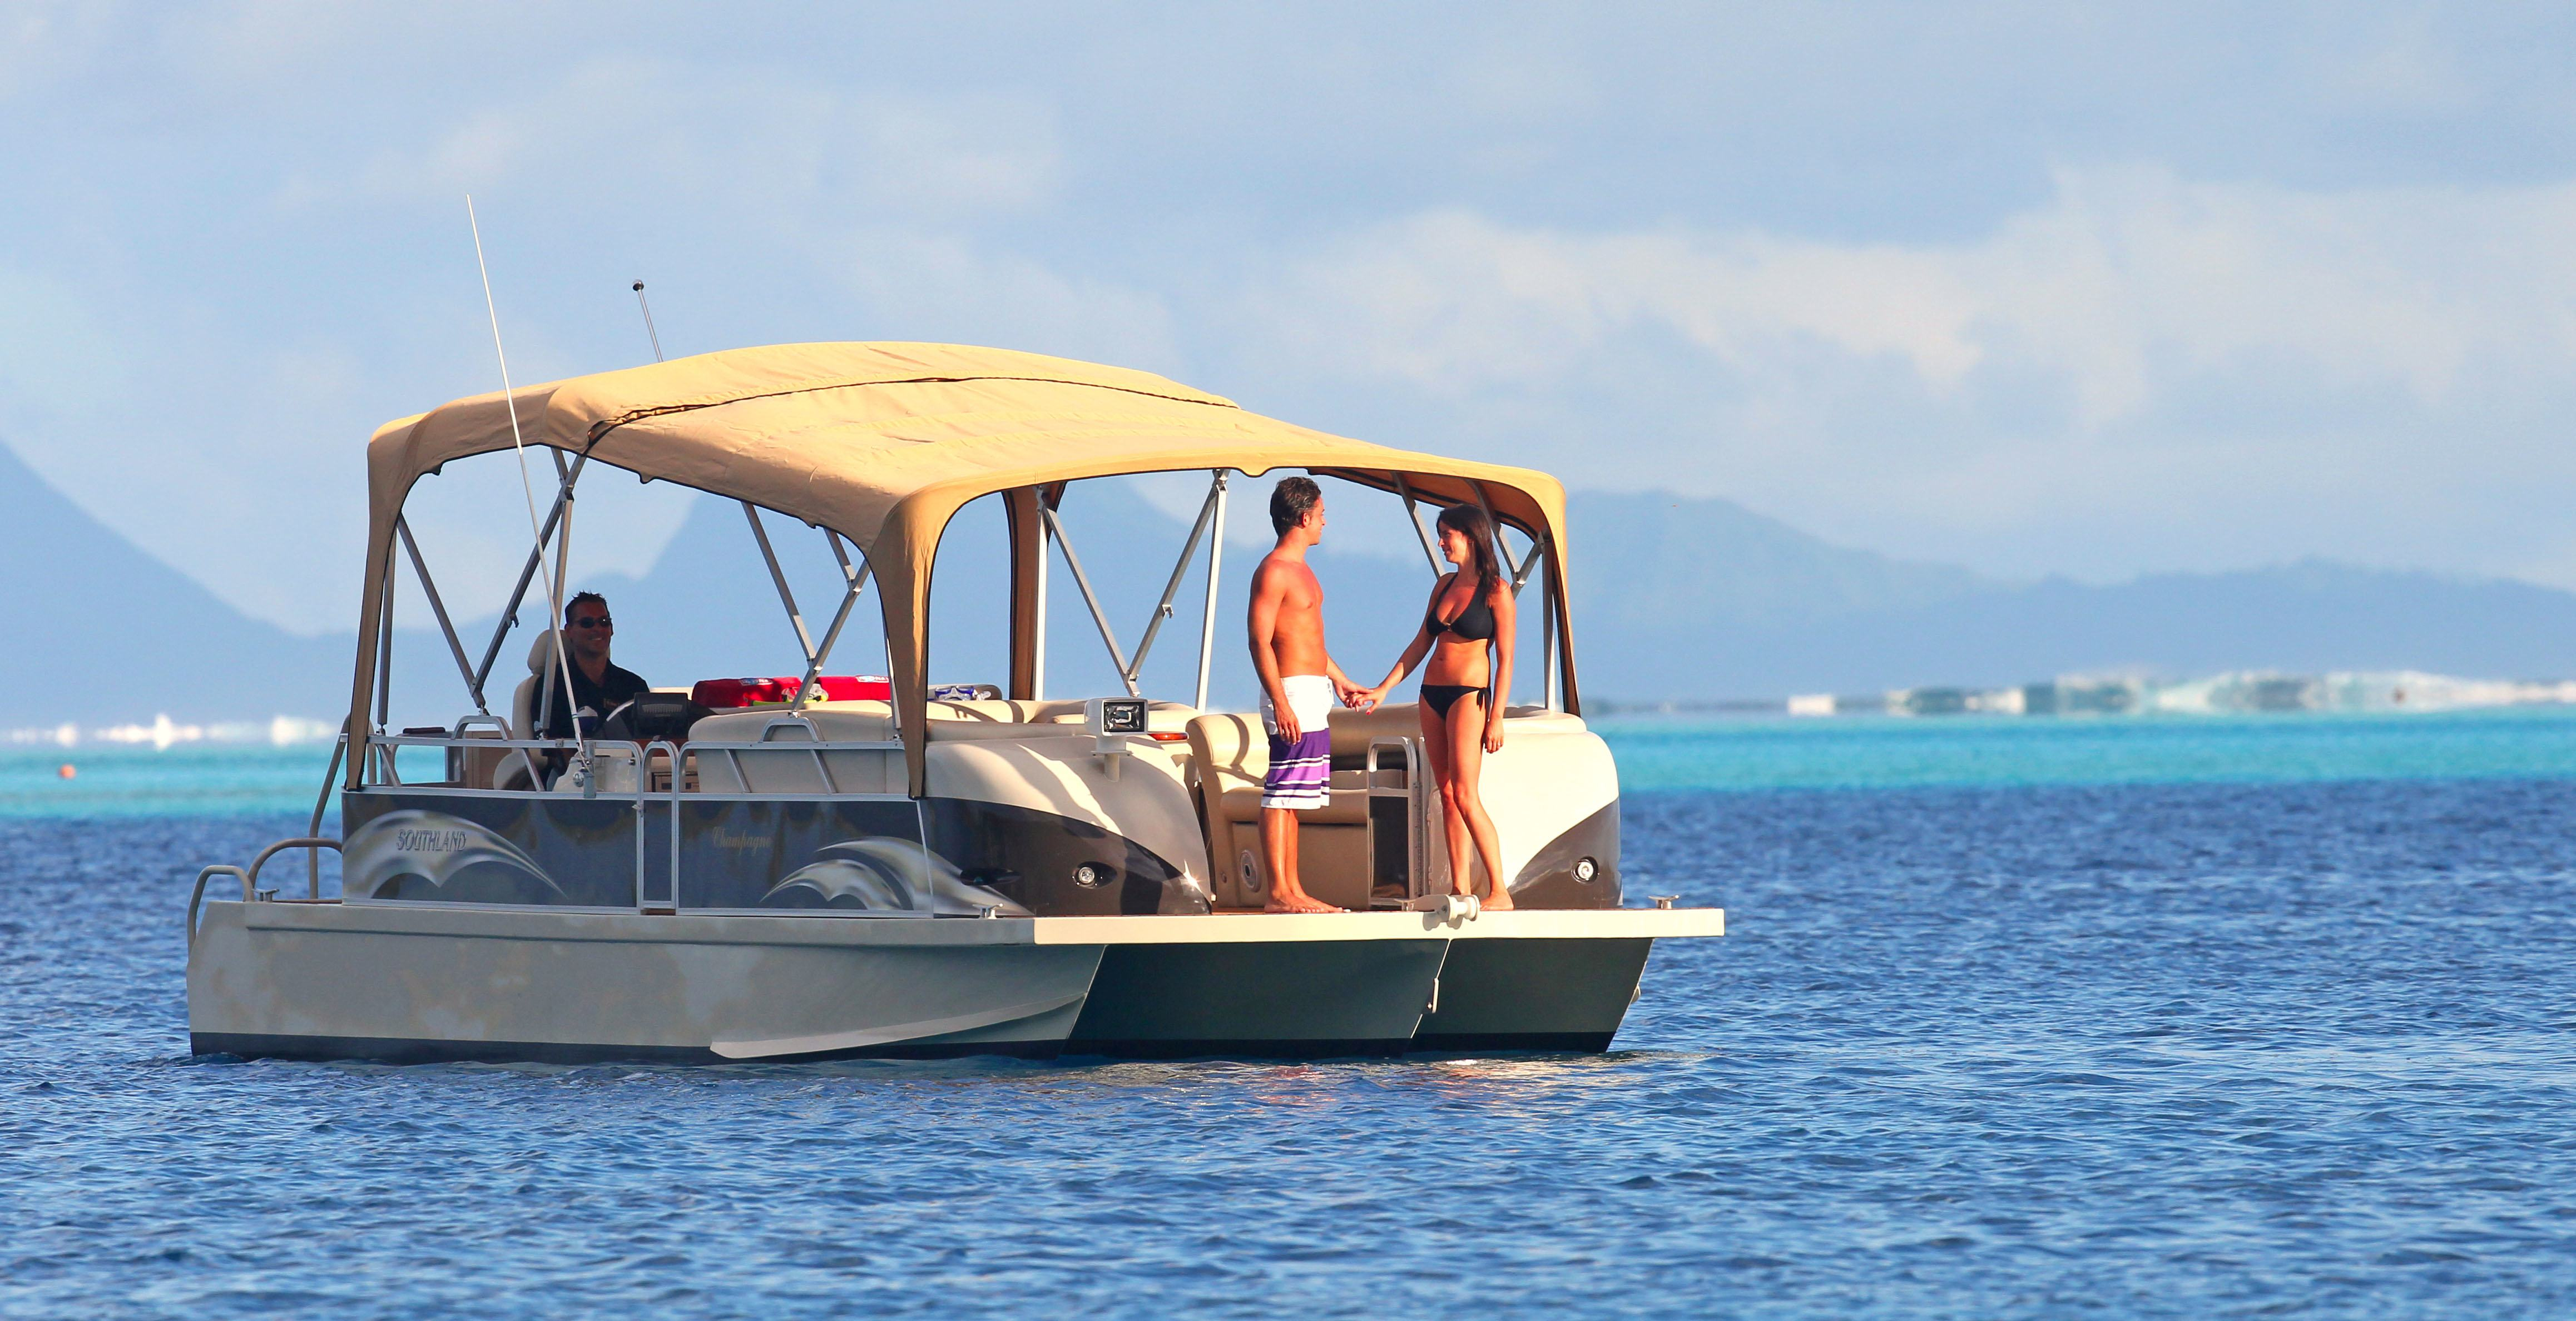 https://tahititourisme.cl/wp-content/uploads/2017/08/Champagne-Boat-2.jpg